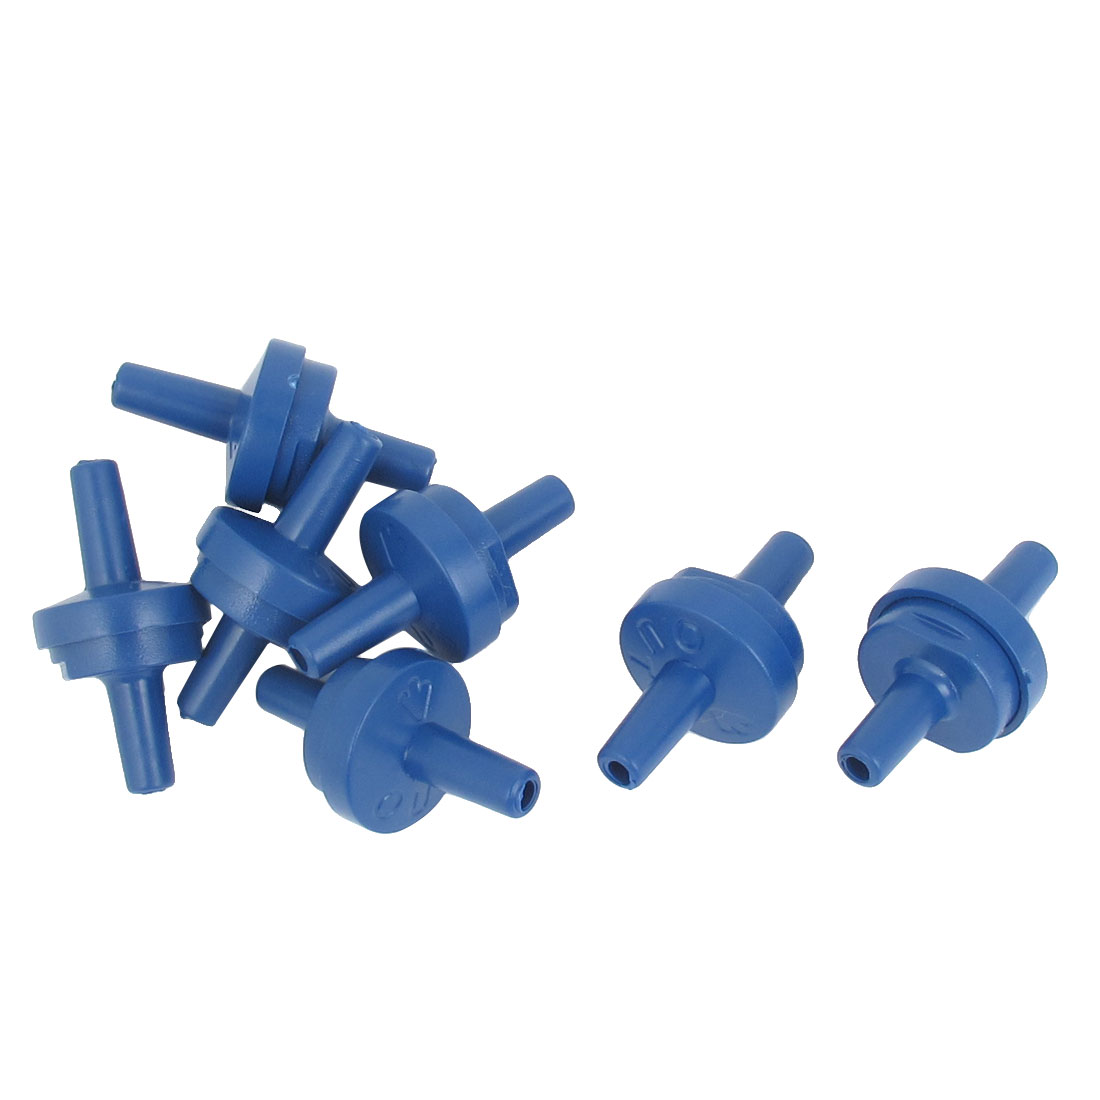 Aquarium Fish Tank Plastic Air Pump Non-Return Outlet One Way Check Valves Blue 7pcs